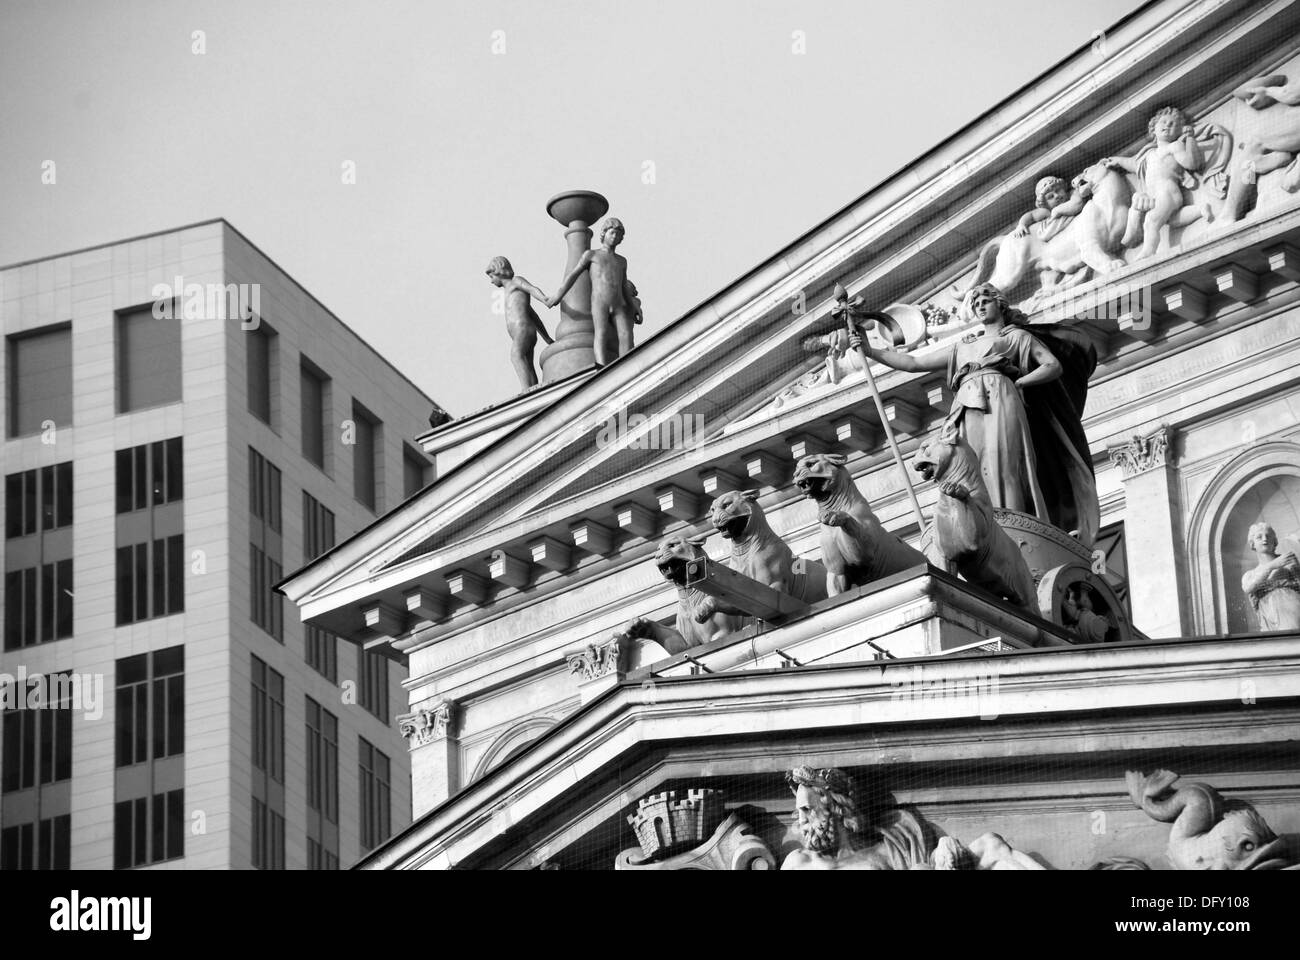 Detail at the old Opera in Frankfurt - Stock Image